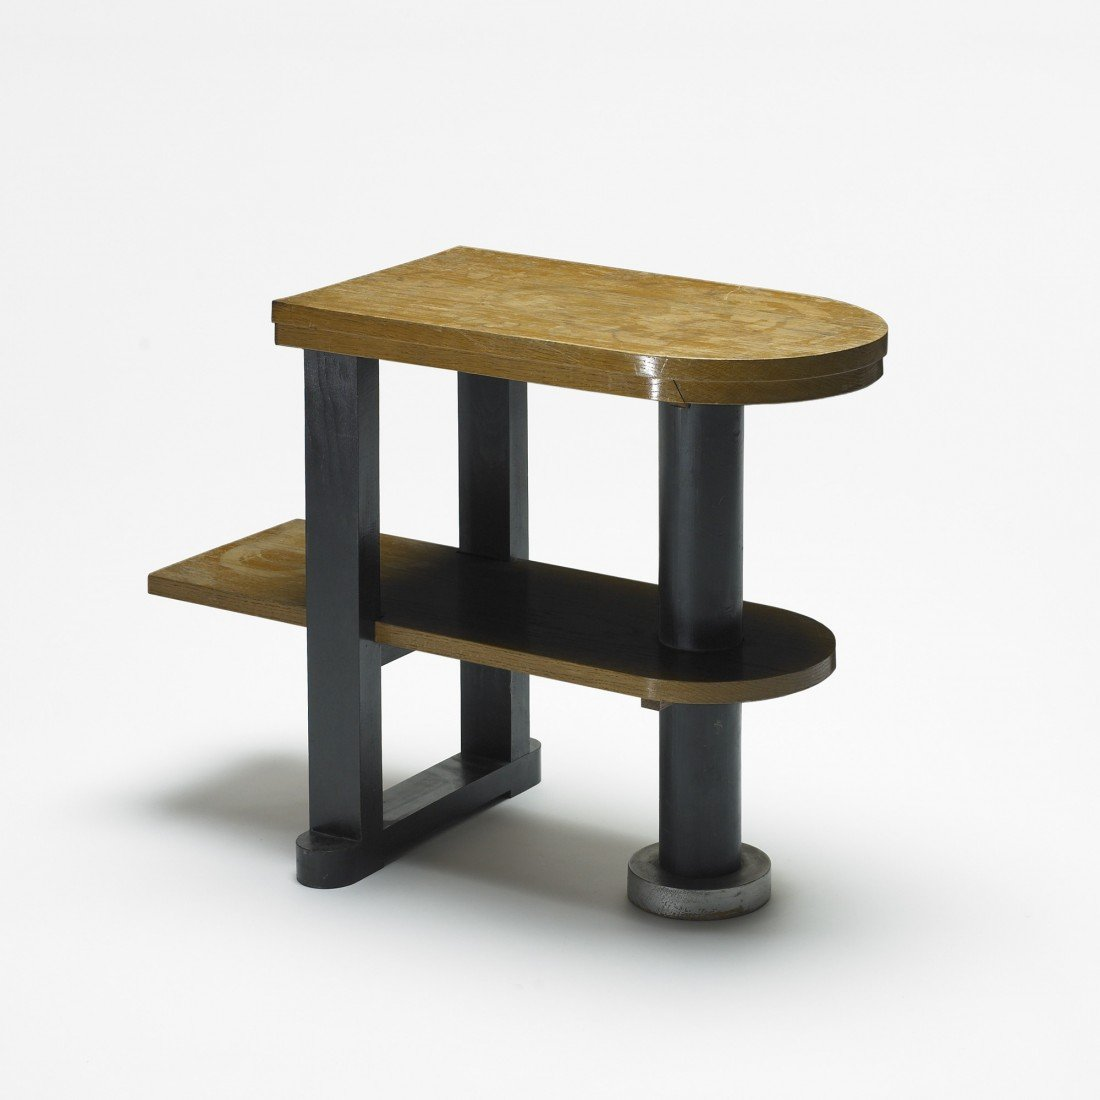 128: Art Deco occasional table